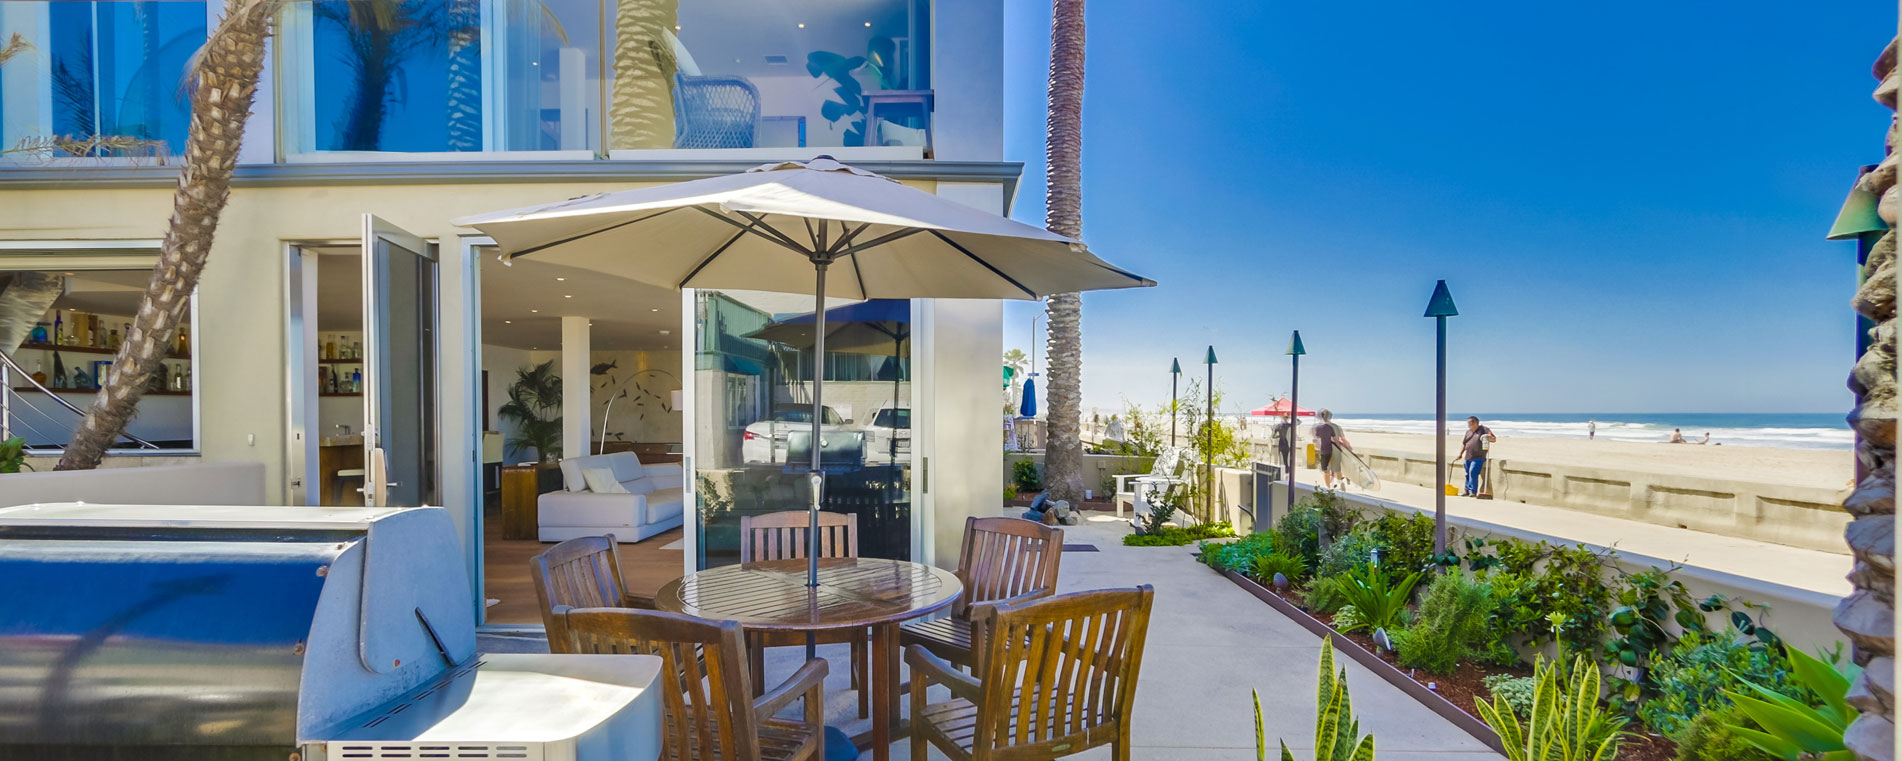 Renting a Condo Proves to Be a Great Vacation Decision